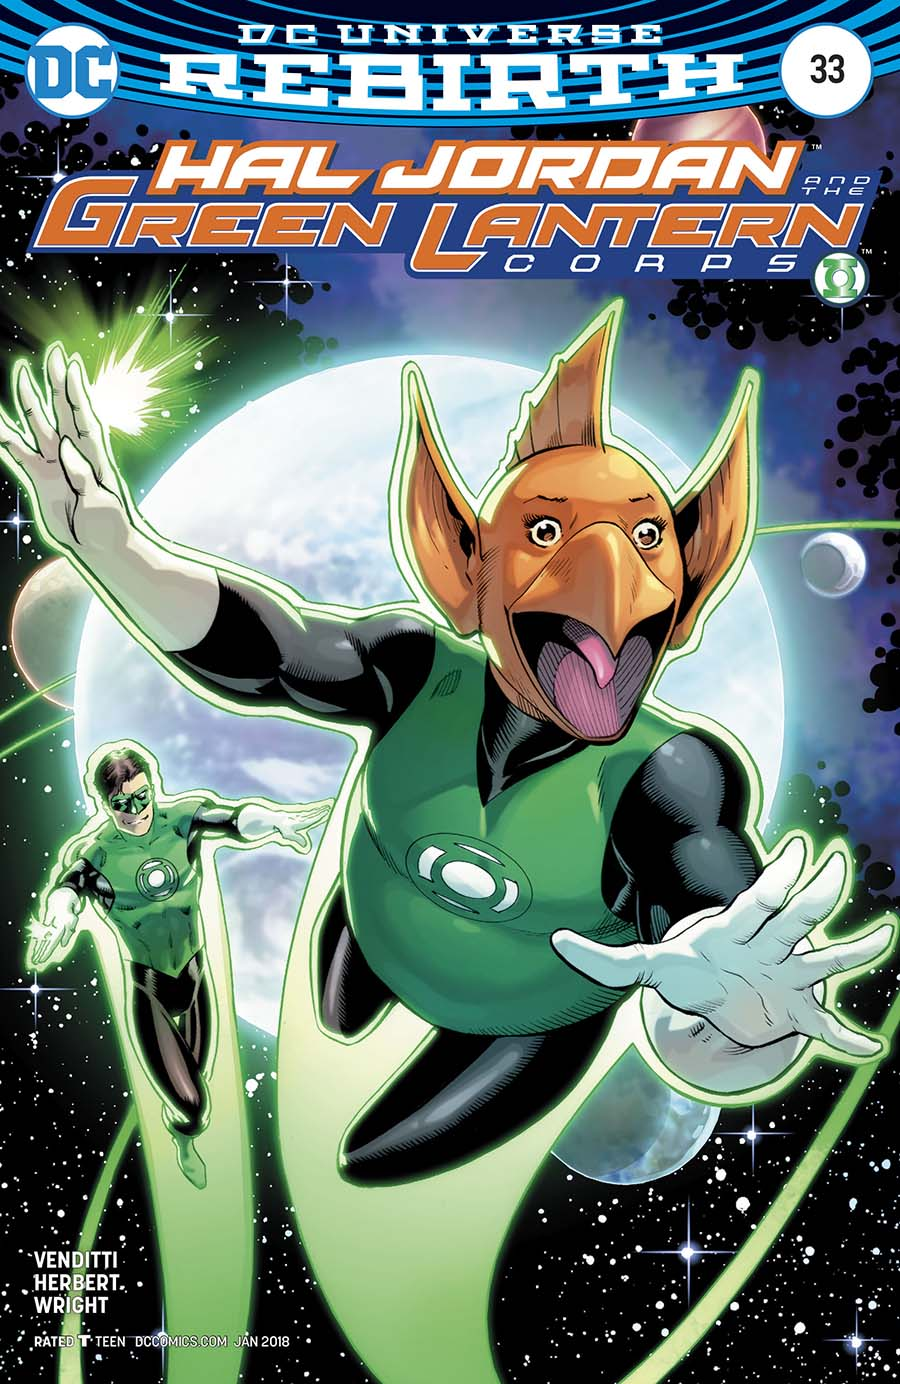 Hal Jordan And The Green Lantern Corps #33 Cover B Variant Barry Kitson Cover